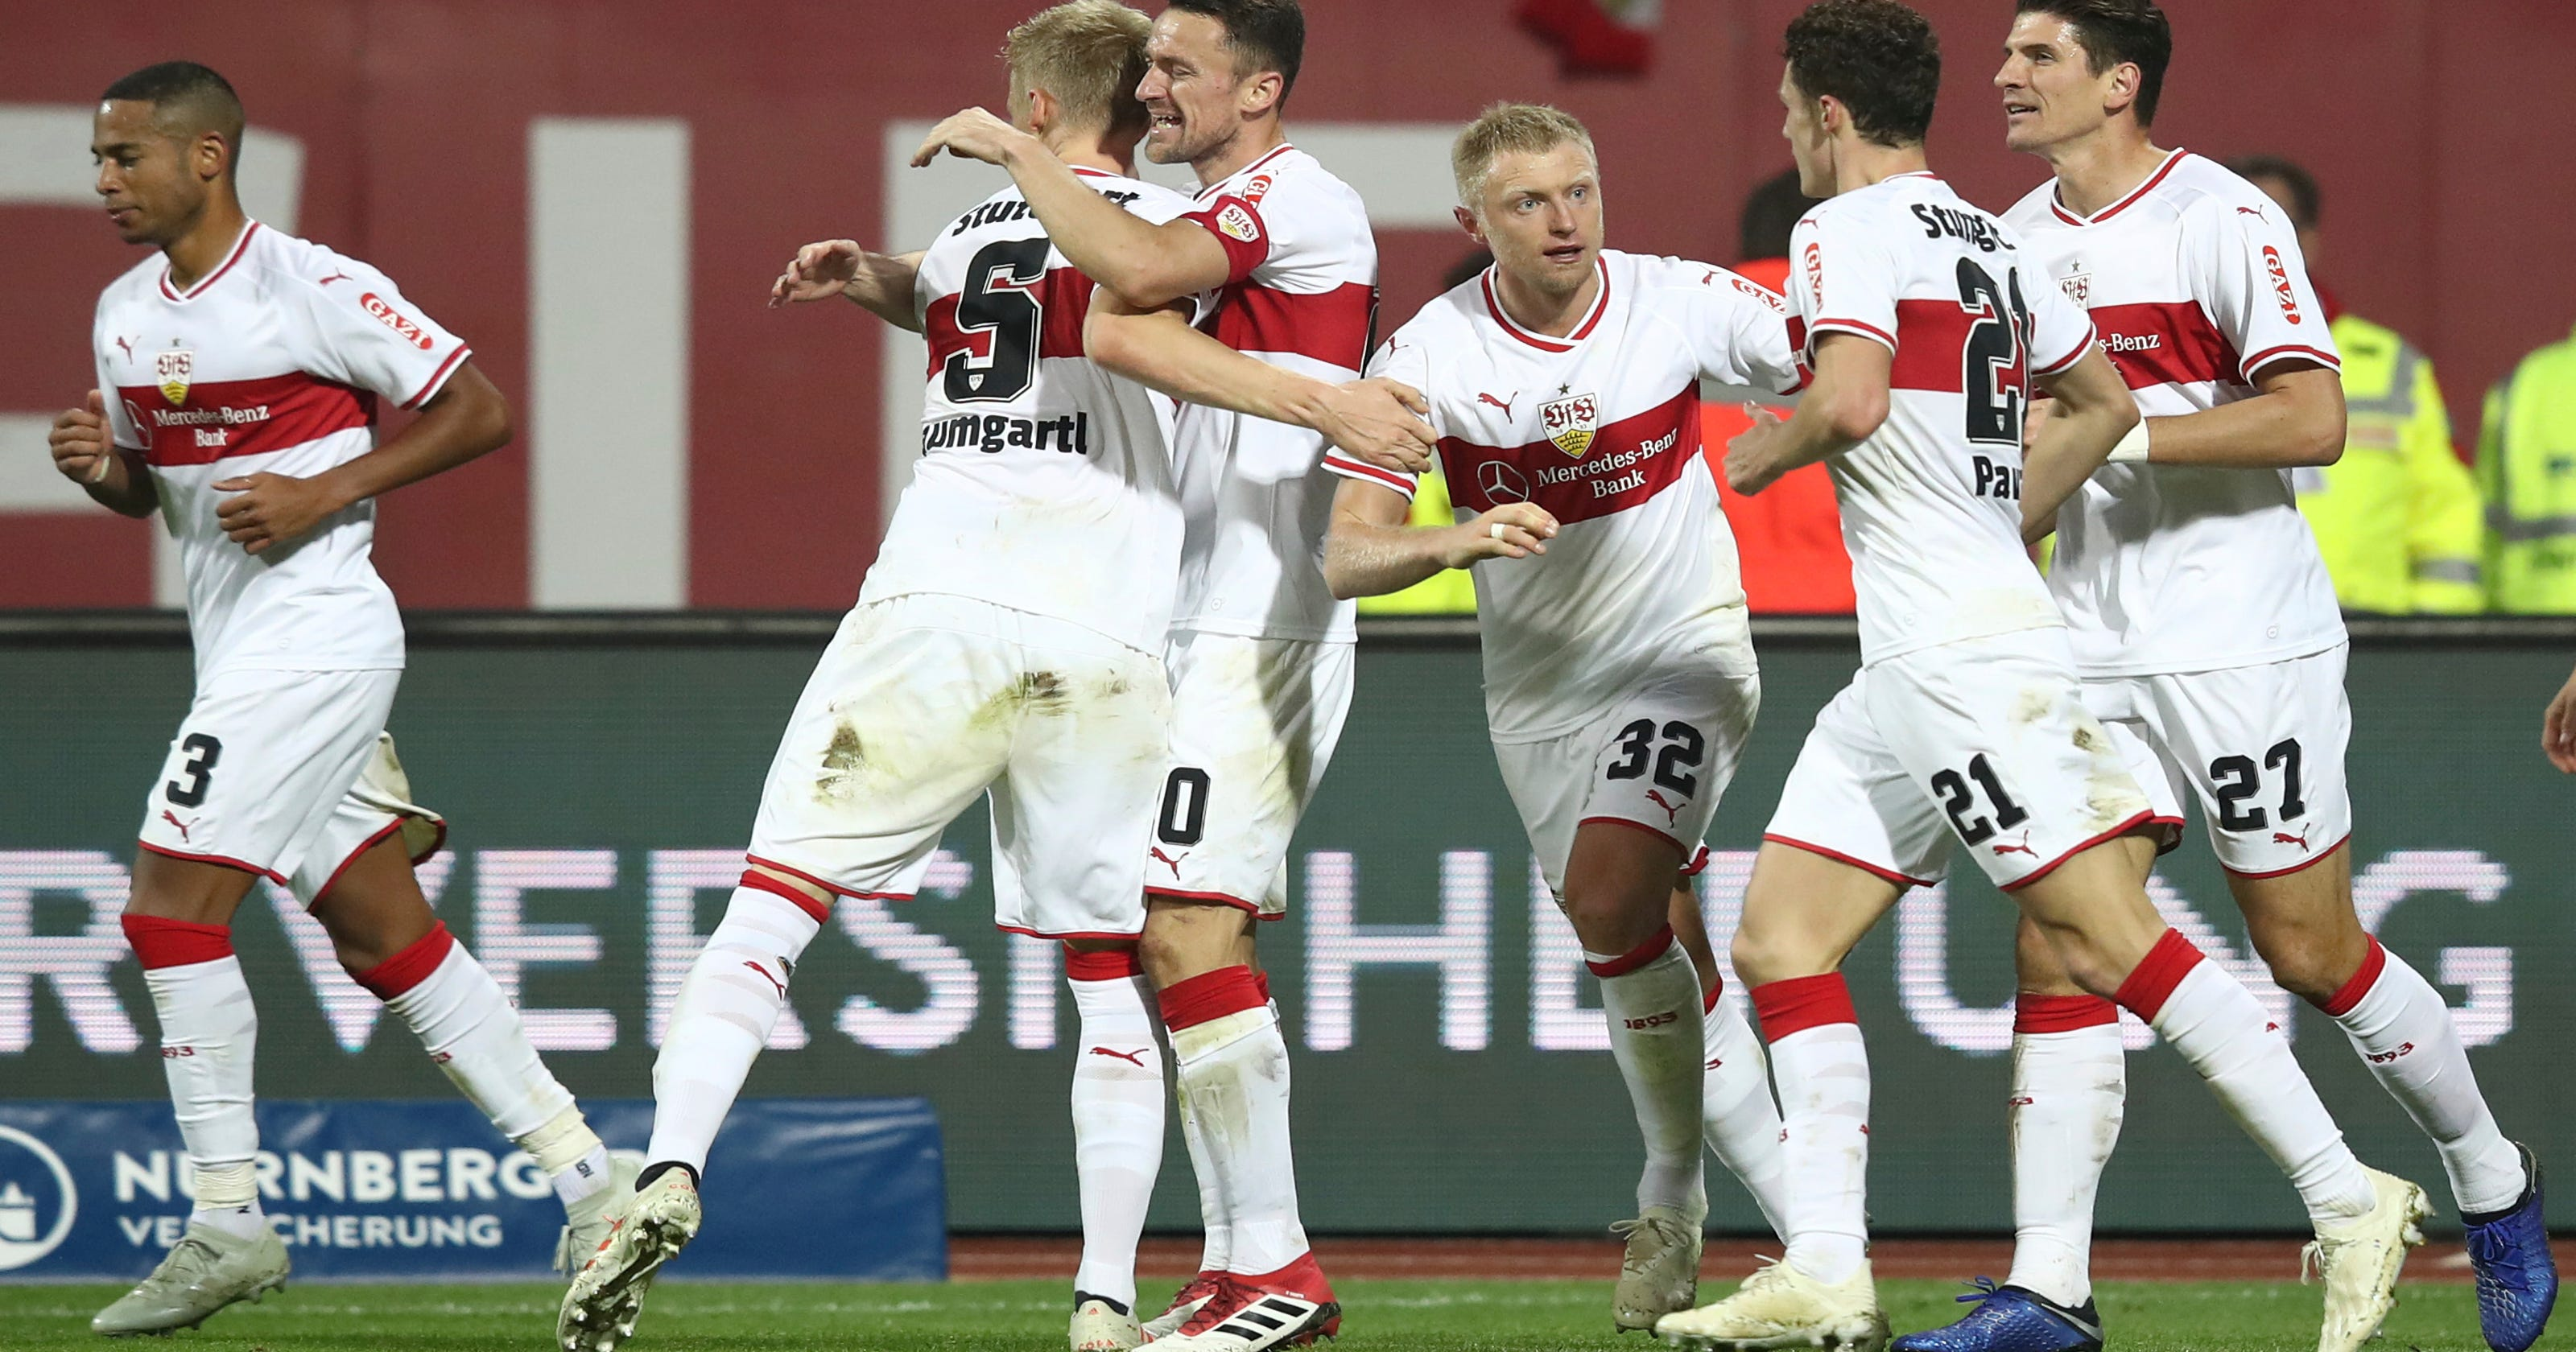 Dortmund comes from behind to beat Bayern 3-2, move 7 ahead